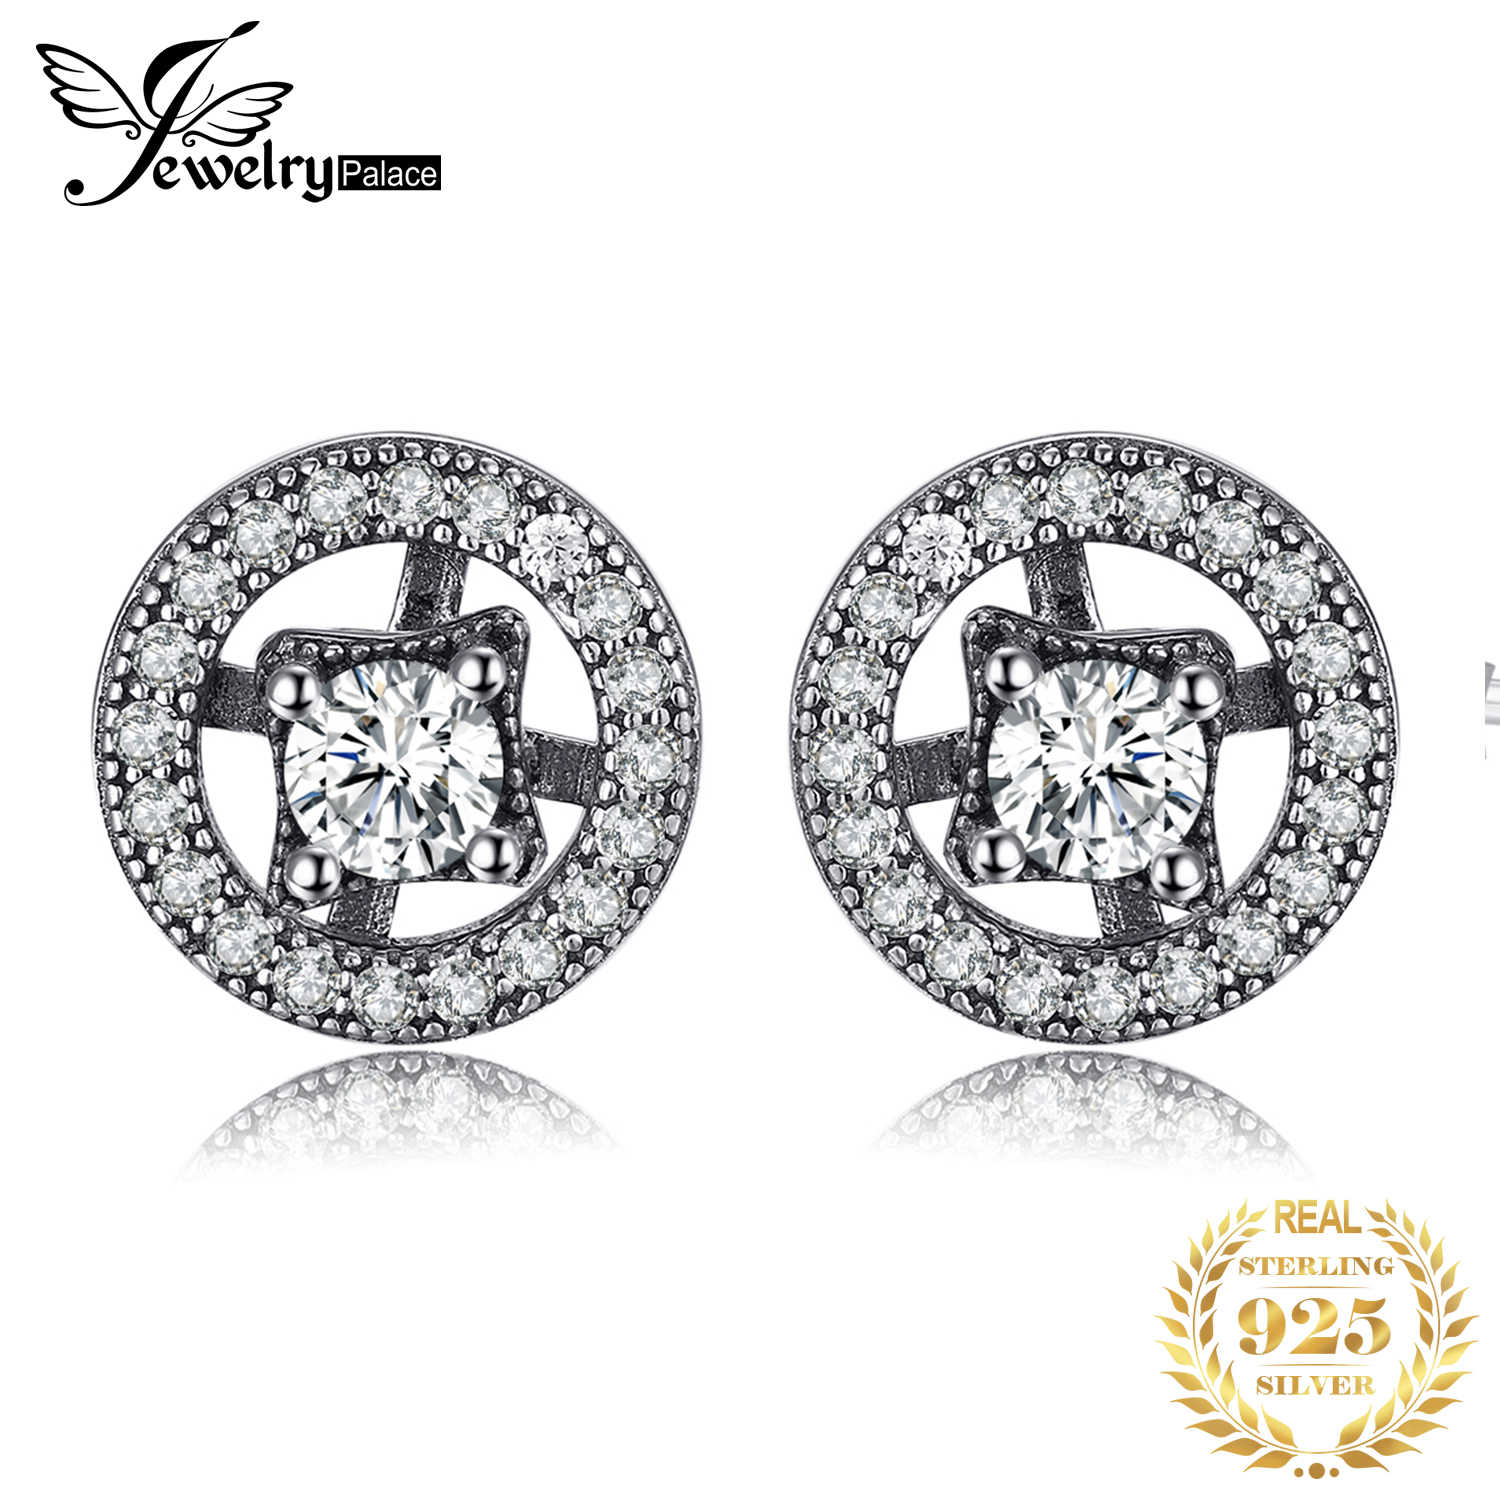 Jewelrypalace 925 Sterling Silver Earrings Stud Earrings Enchanted Vintage Jewelry Women Fashion Gifts for Her Wedding Jewelry